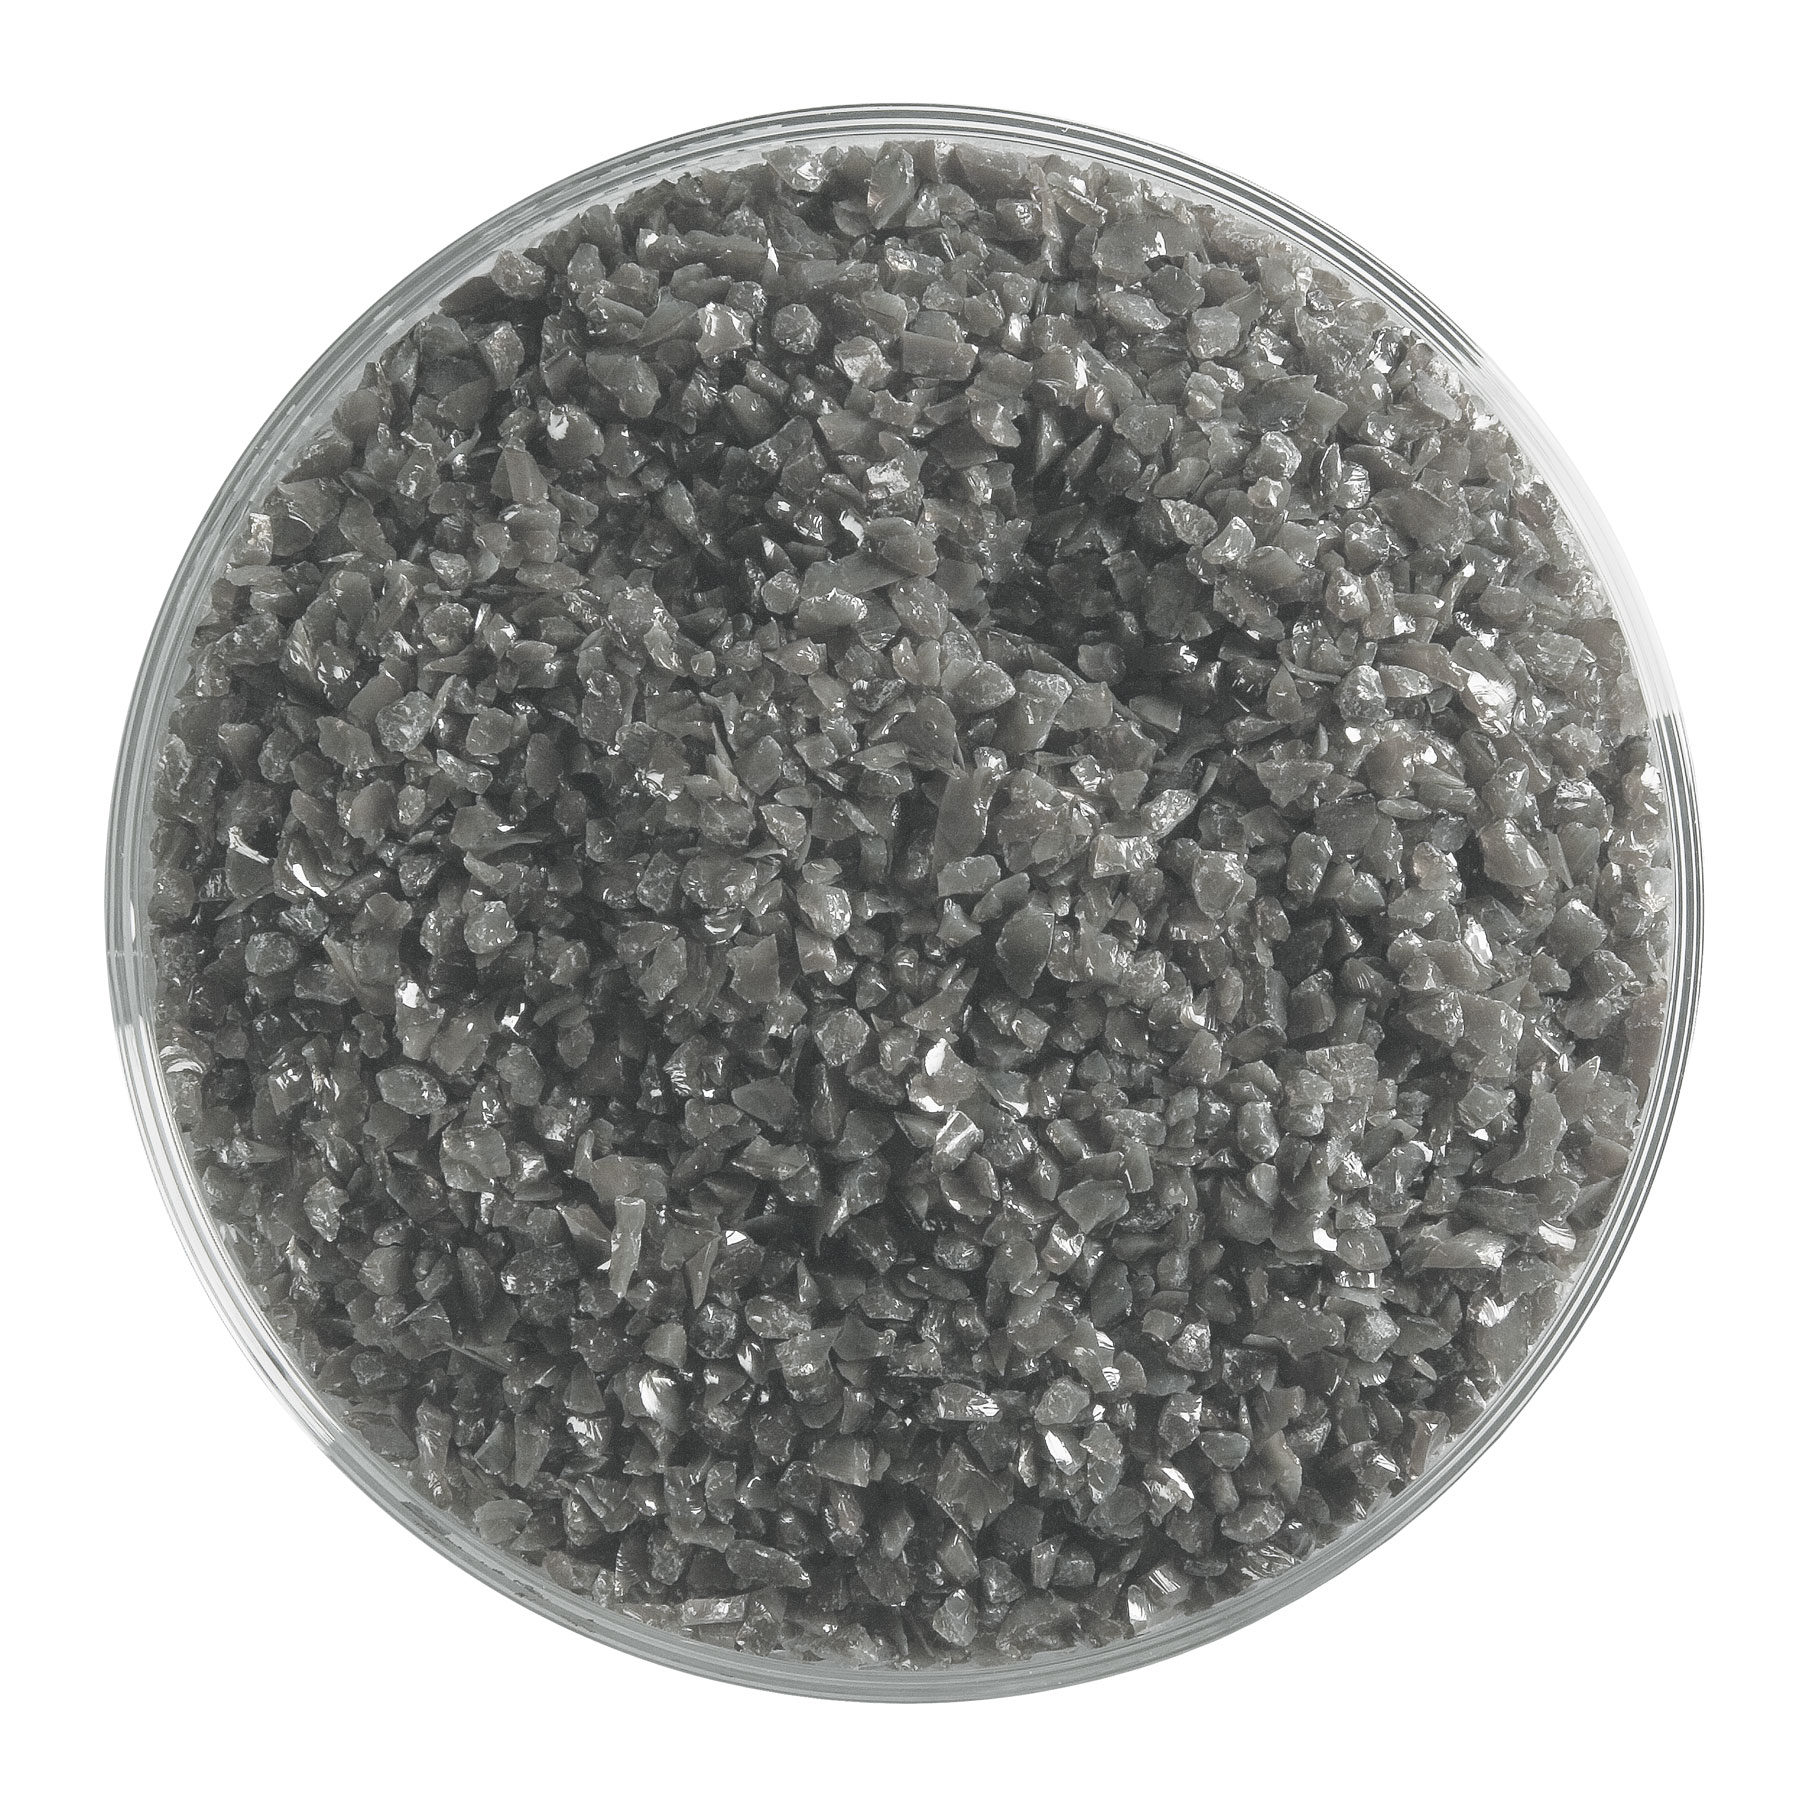 slate gray opalescent frit 000236-0002-F-xxxx